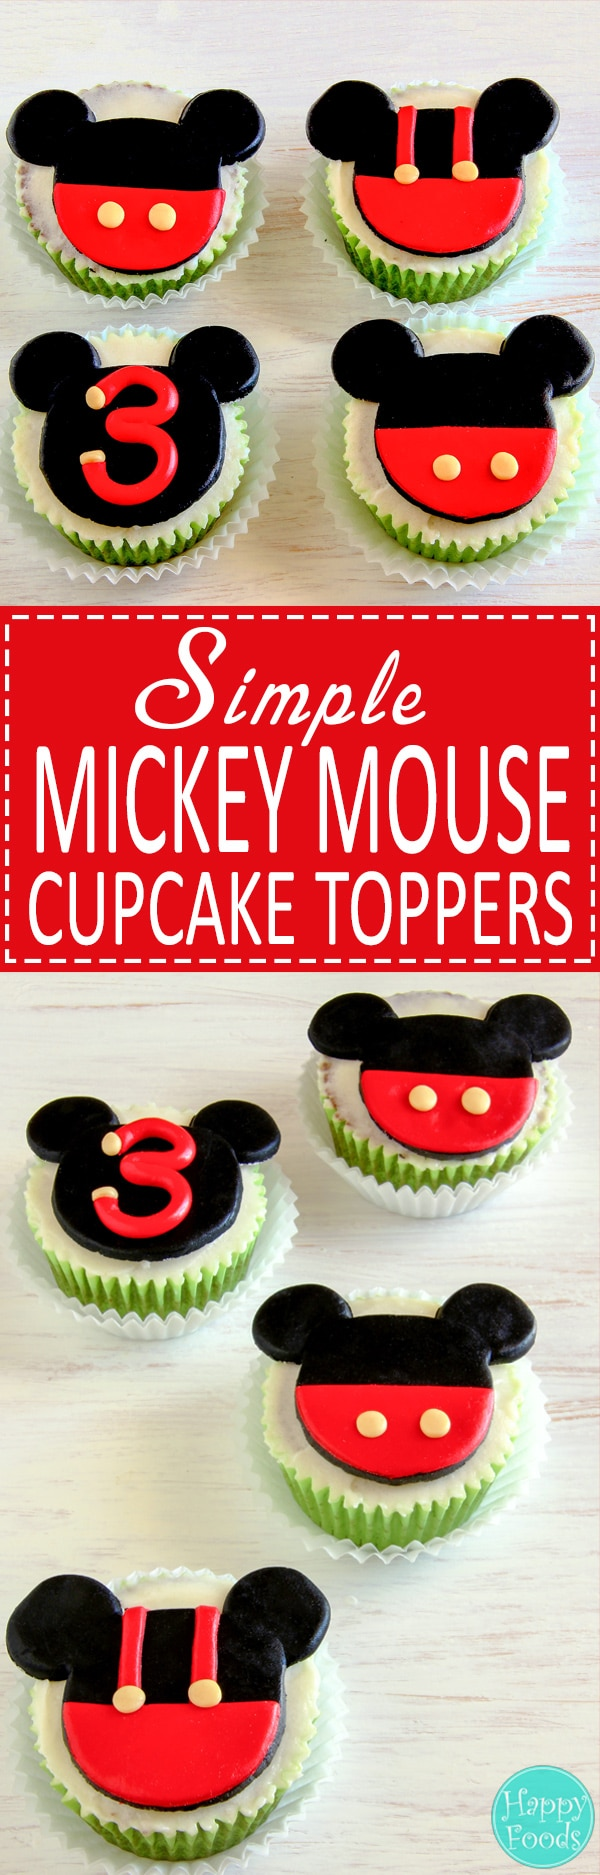 Fun and easy Mickey Mouse fondant cupcake toppers will make any Mickey Mouse fan happy. They are edible, cute and made with no special tools or cutters. Cake decorating tutorial